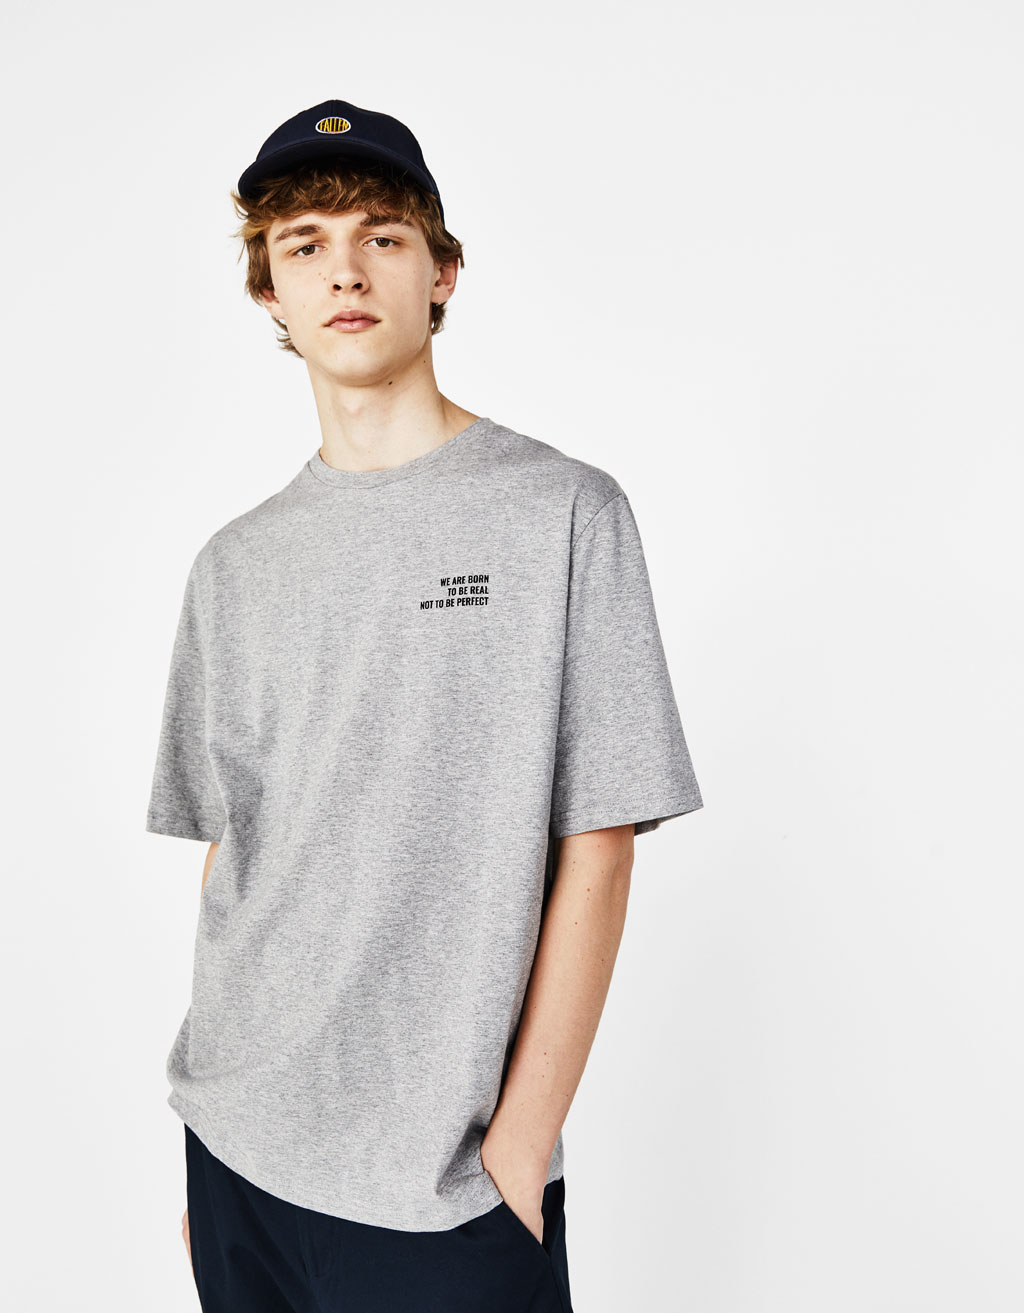 Boxy fit T-shirt with slogan